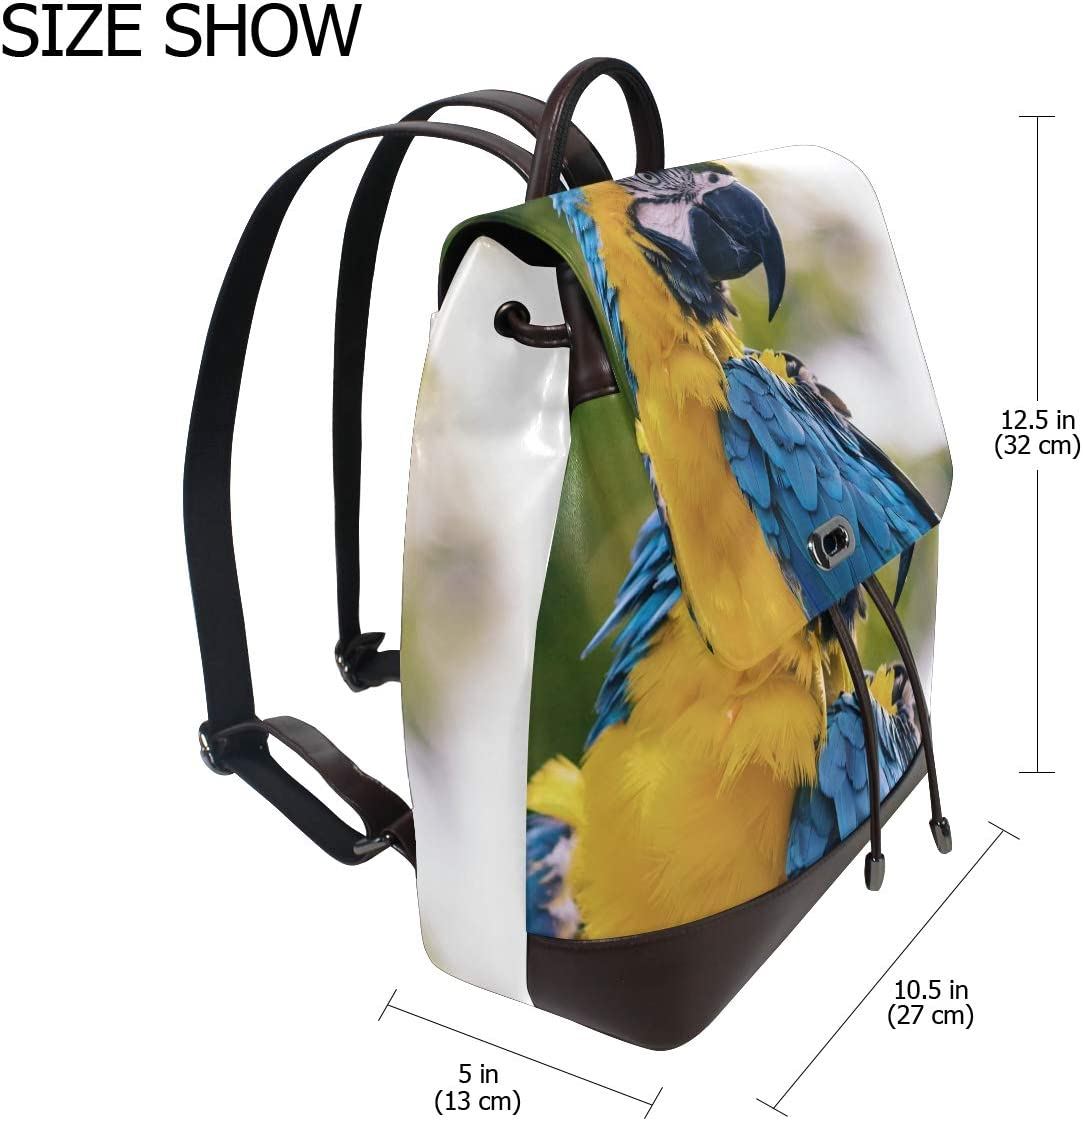 Shopping Bag Storage Bag For Men Women Girls Boys Personalized Pattern Yellow And Blue Macaw Travel Bag School Bag Backpack